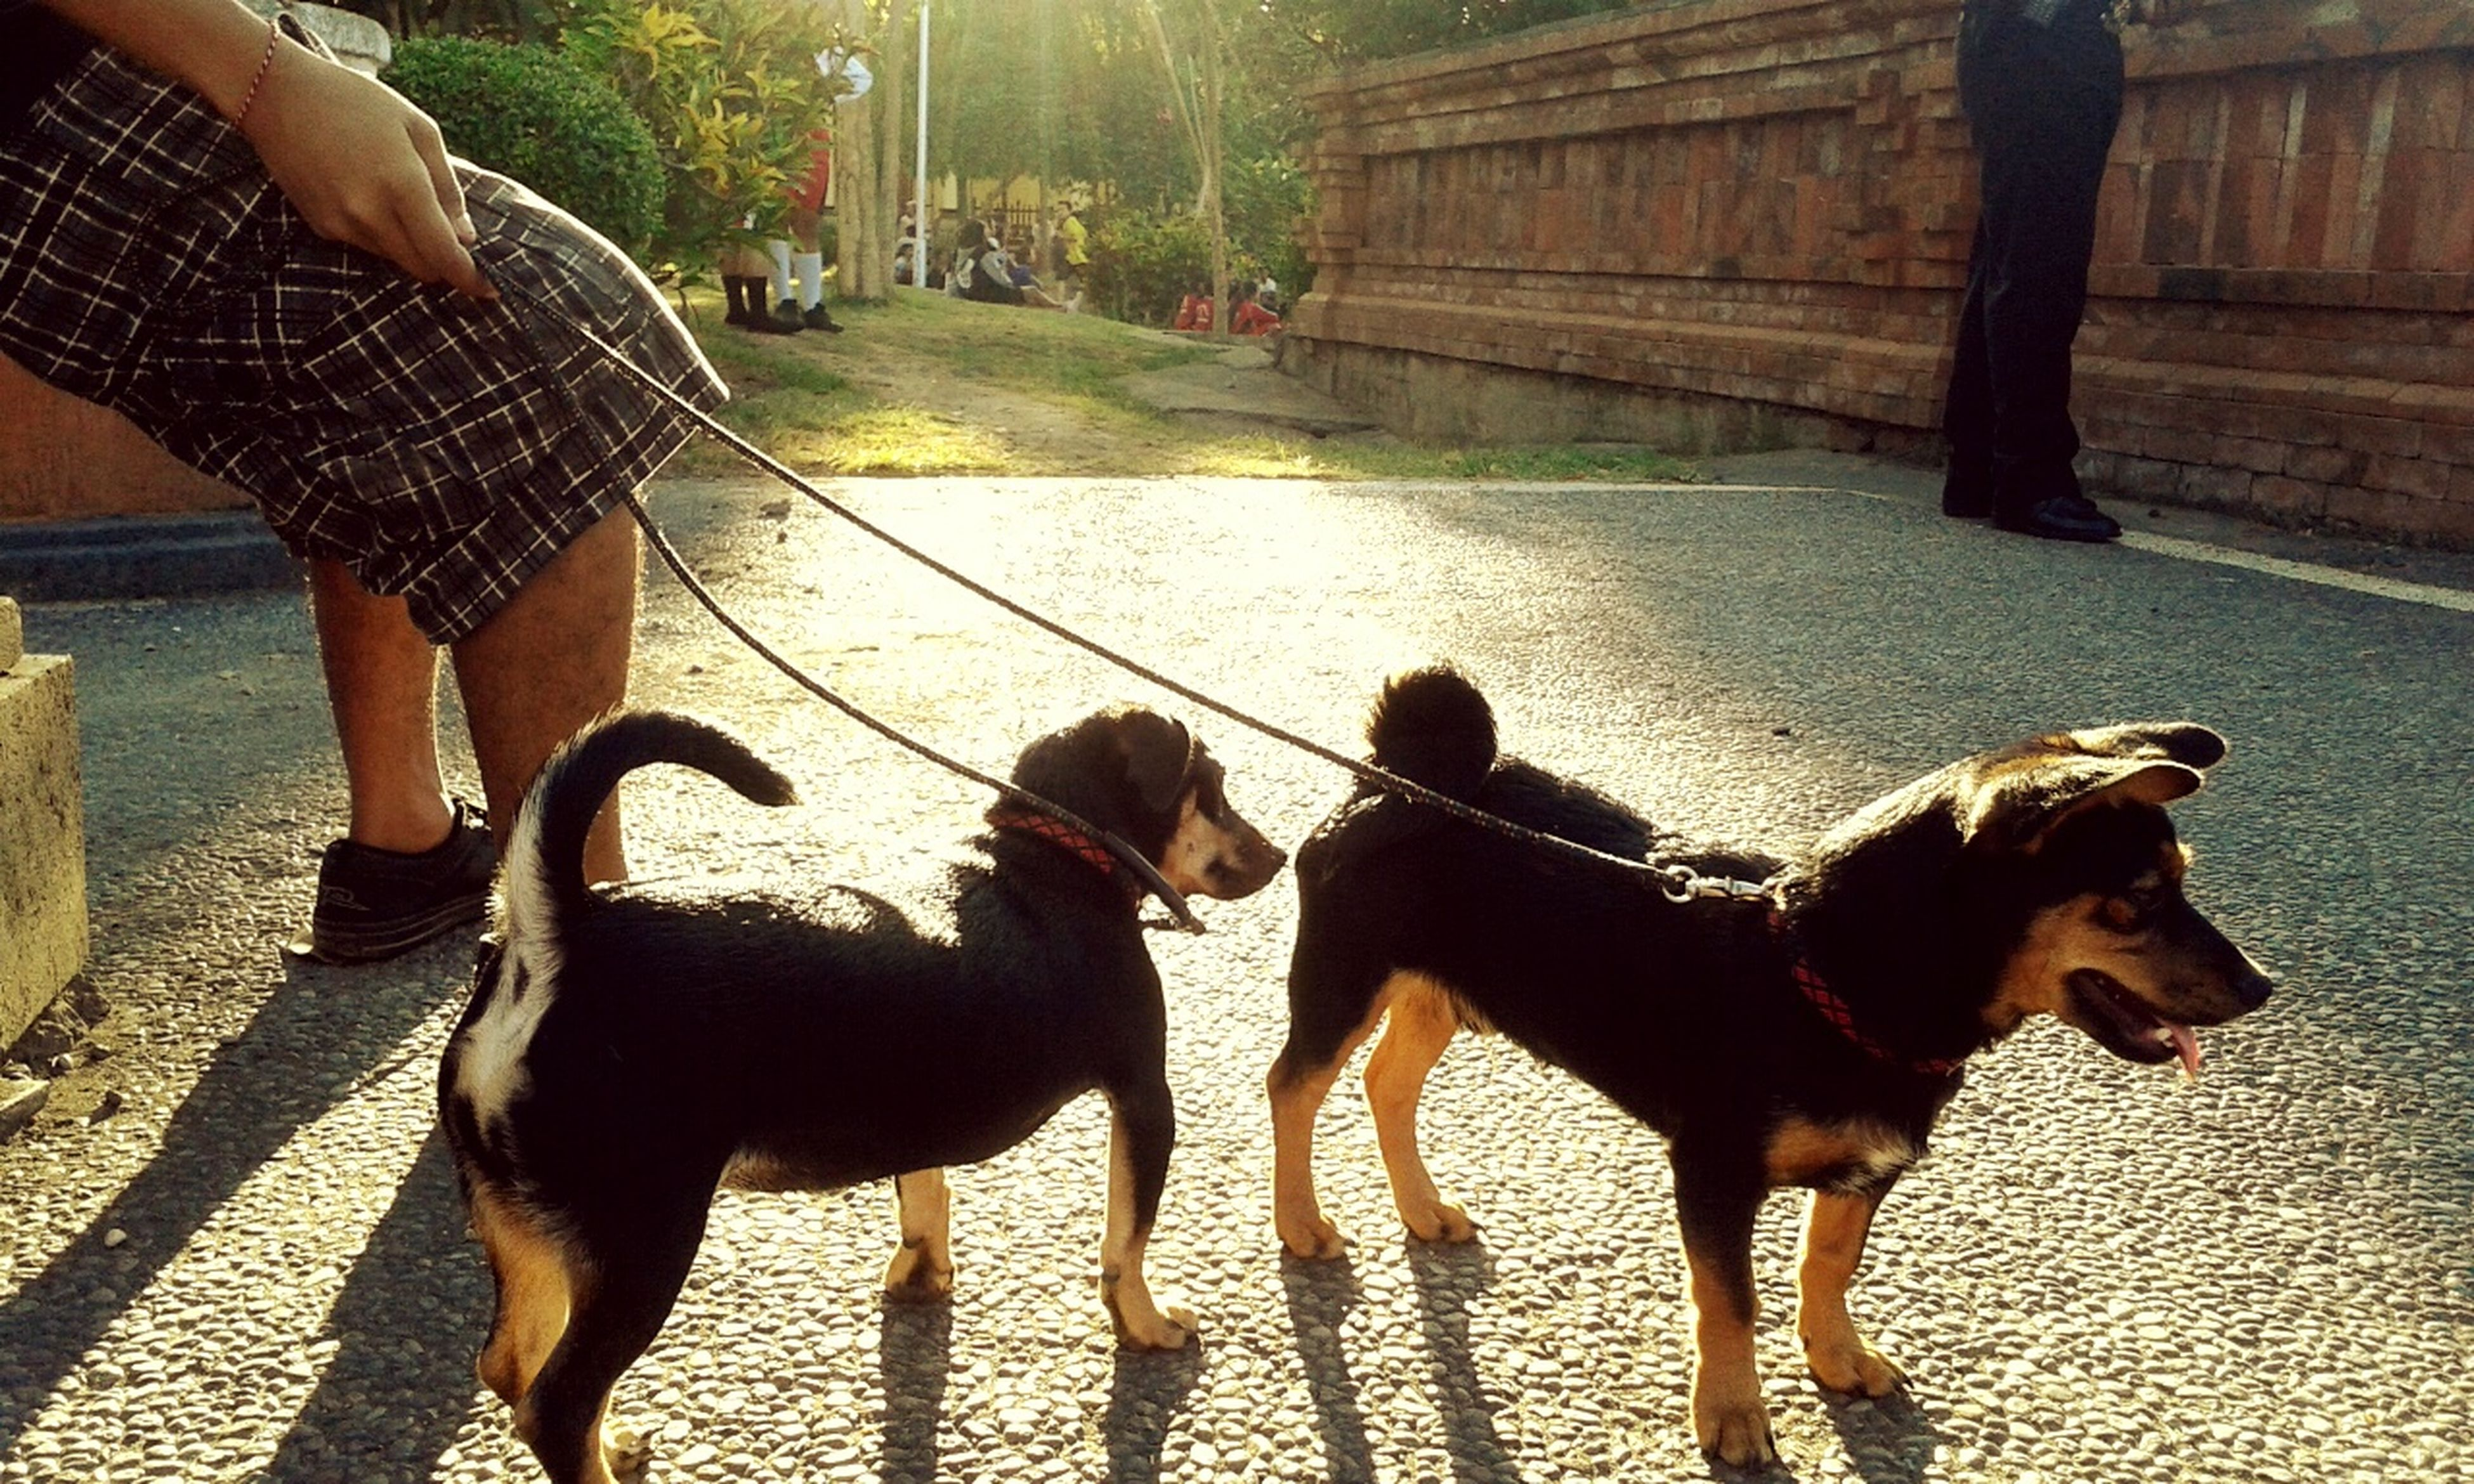 animal themes, domestic animals, mammal, lifestyles, one animal, leisure activity, dog, walking, pets, togetherness, full length, men, street, pet owner, two animals, pet leash, shadow, sunlight